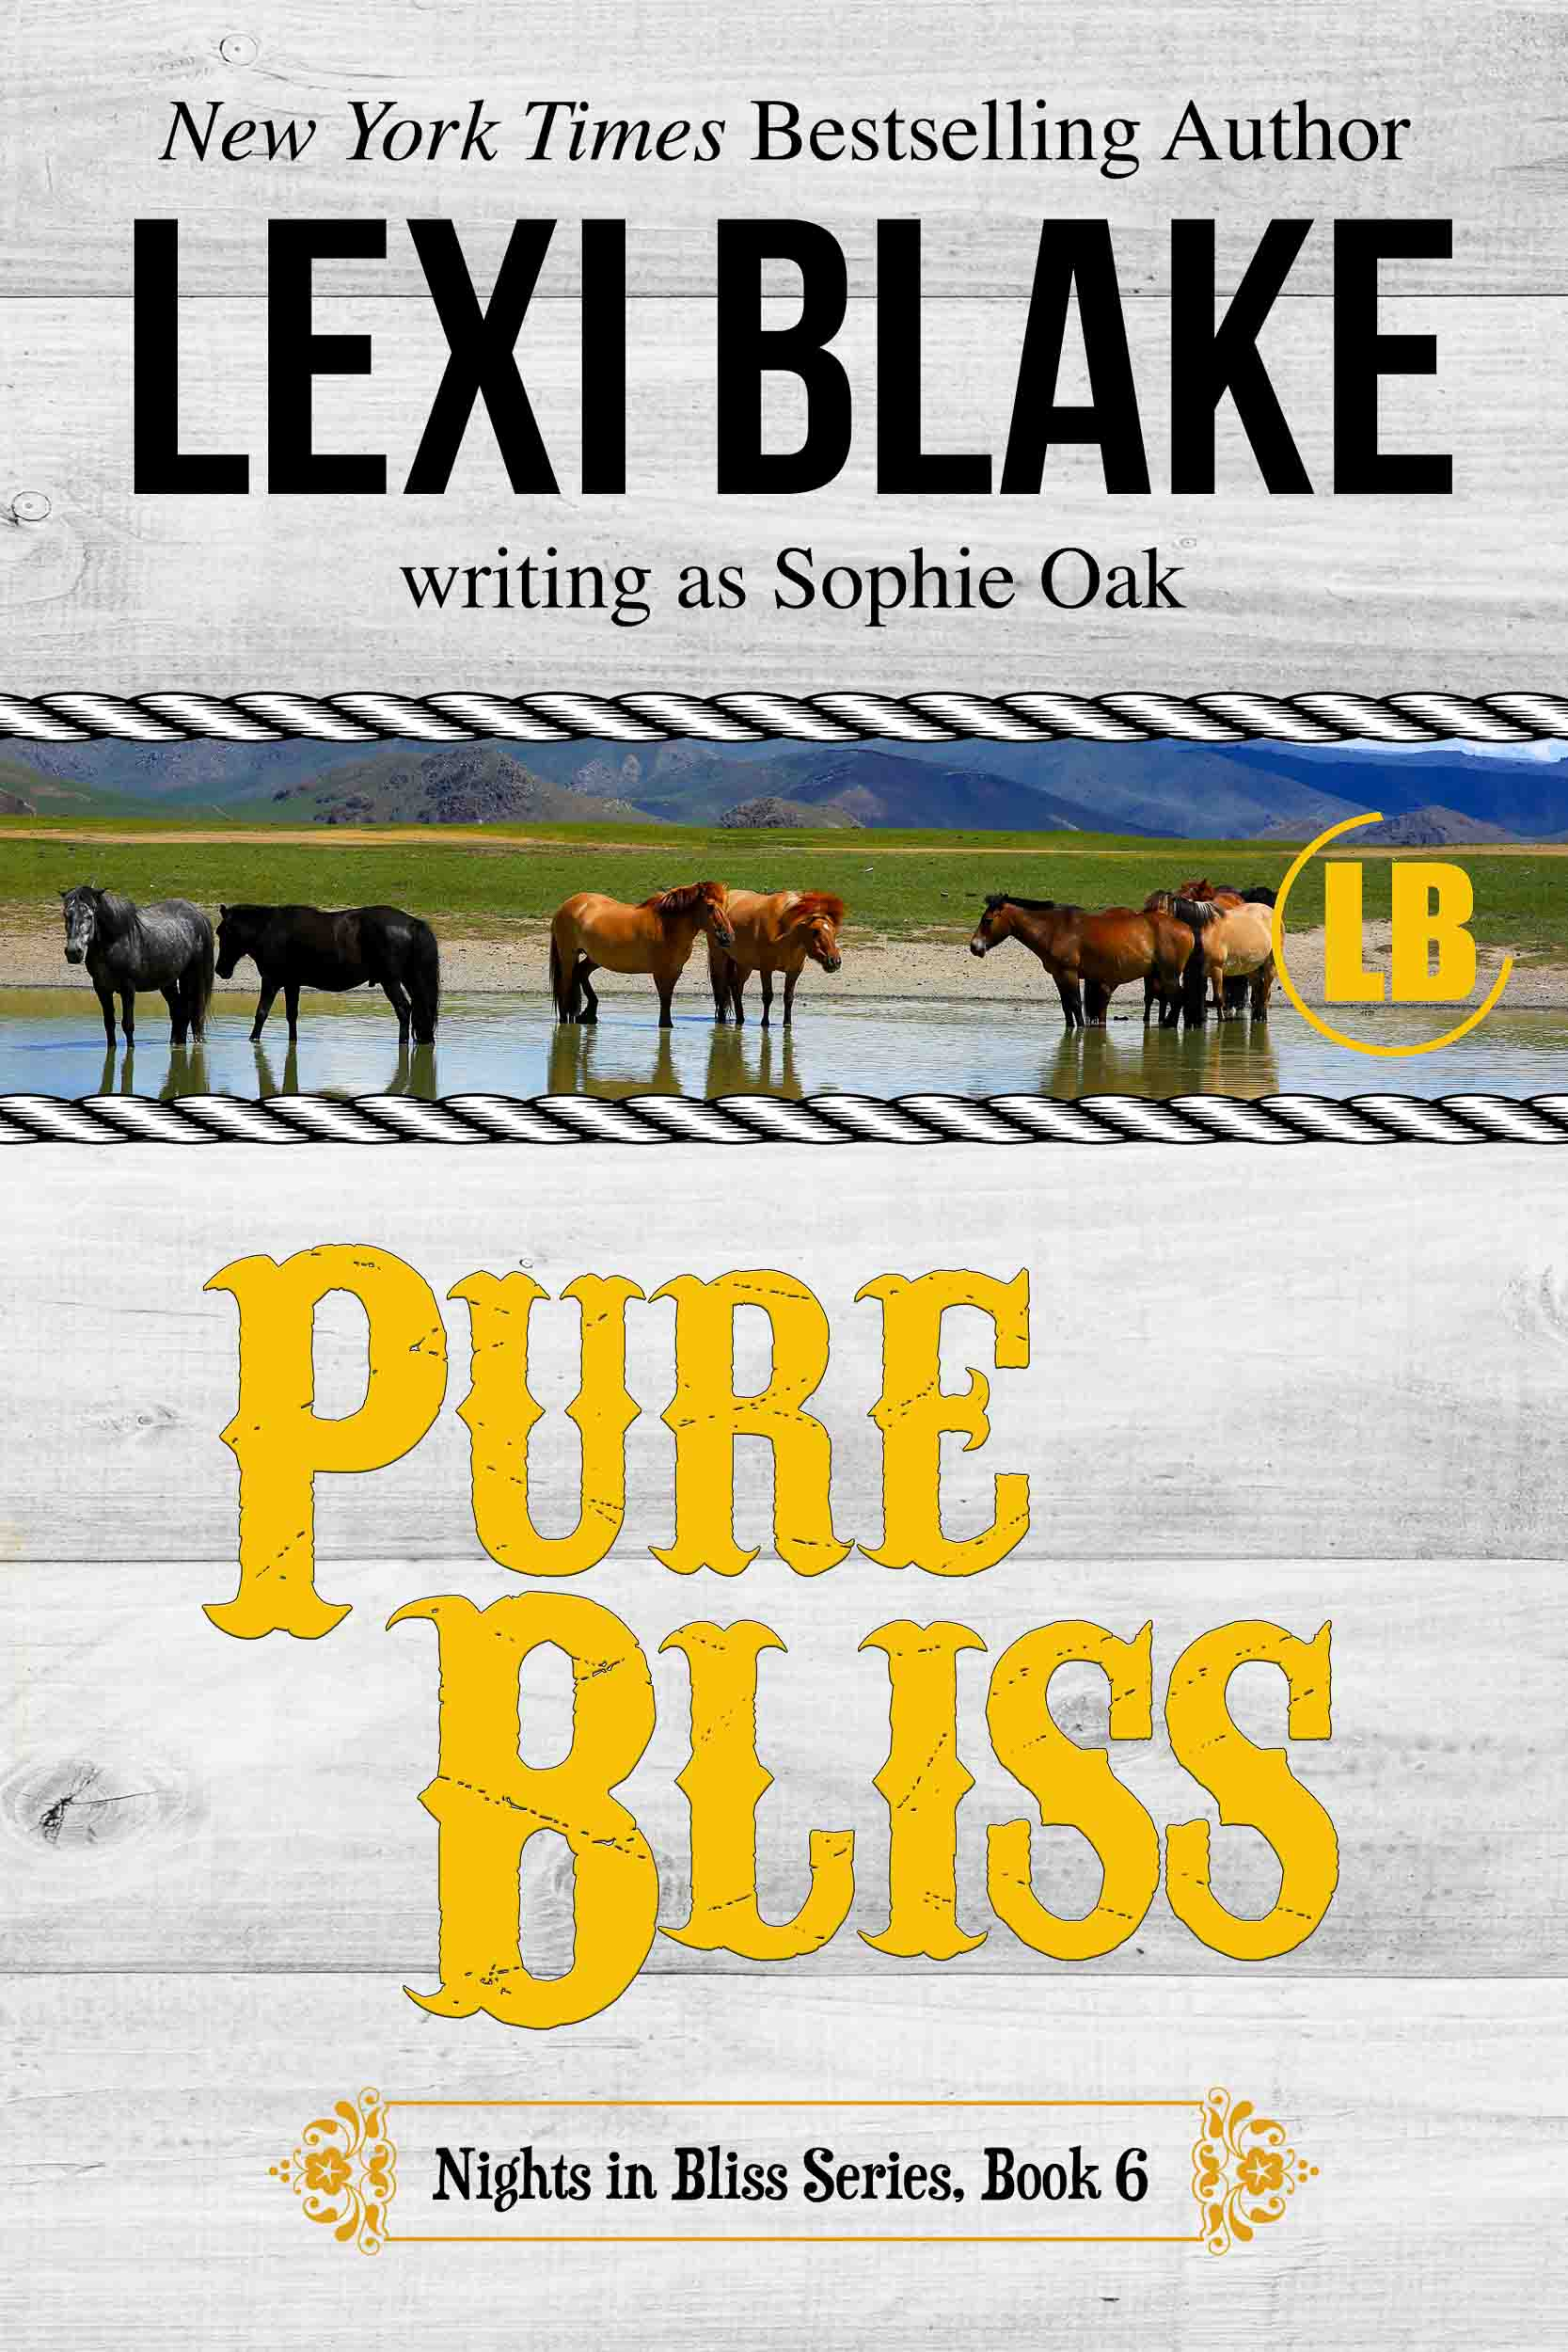 Lexi Blake Found in Bliss.jpg